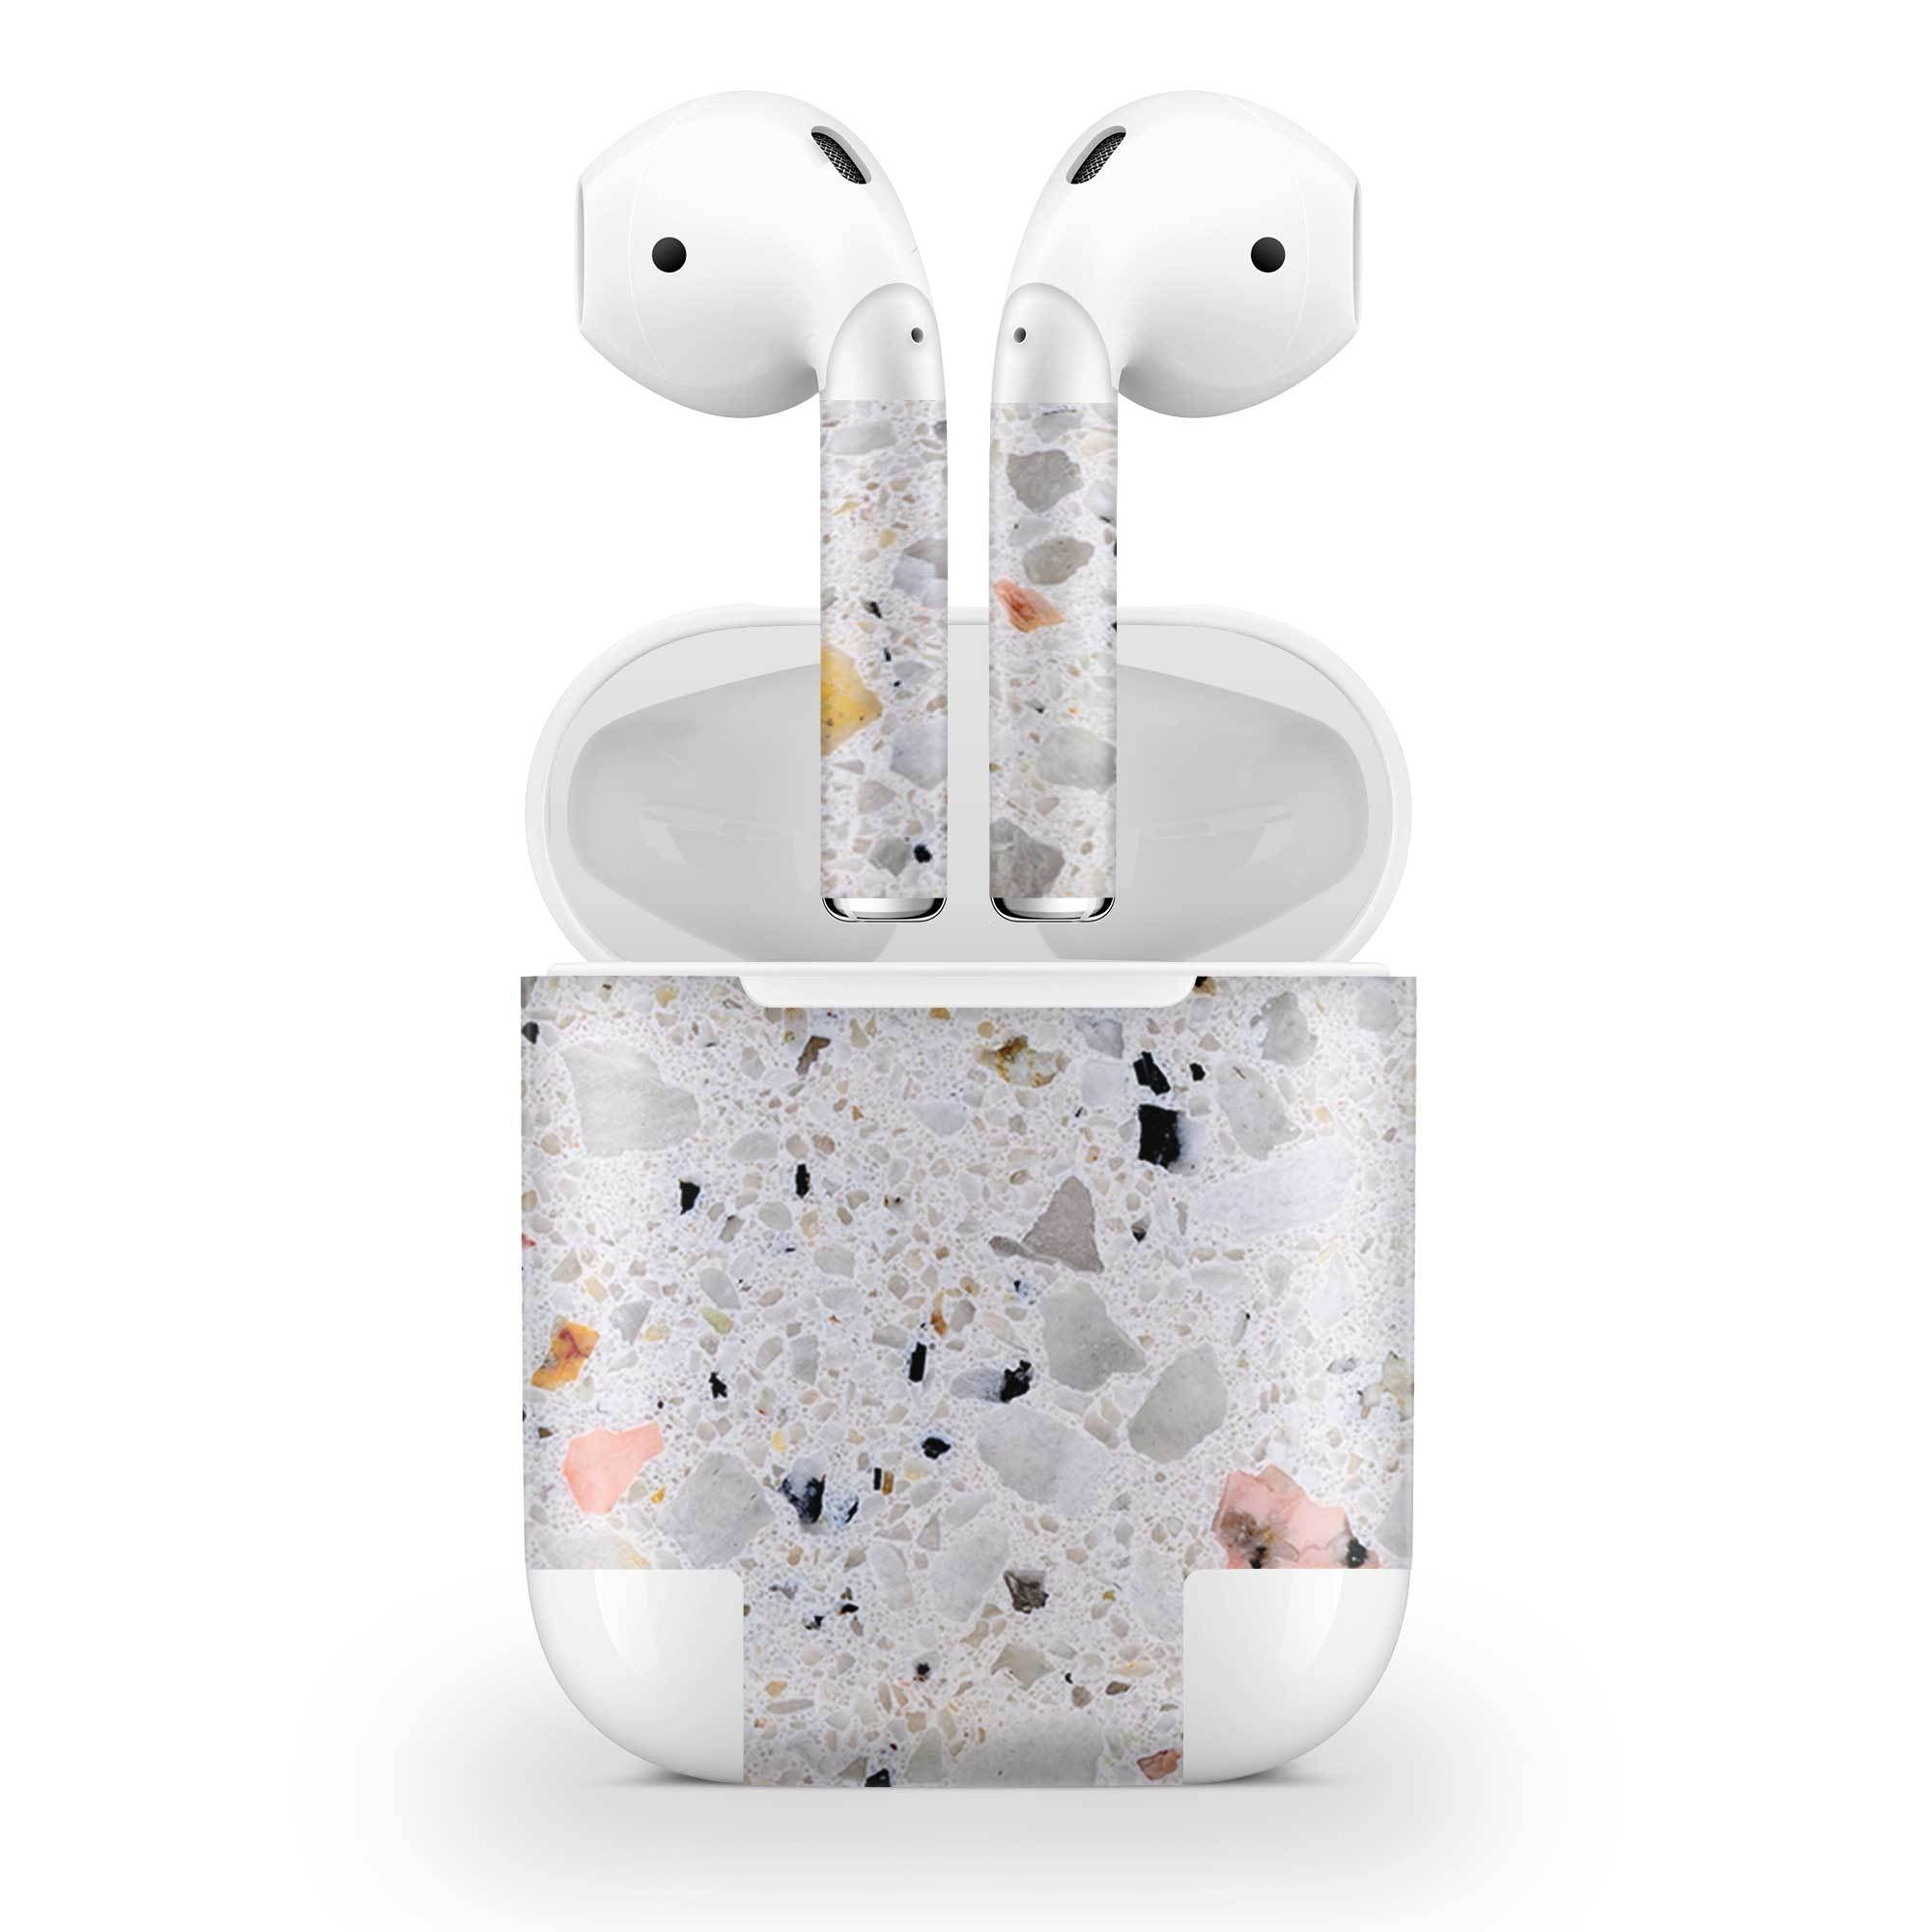 Terrazzo AirPods (No Wireless Charging) Skin